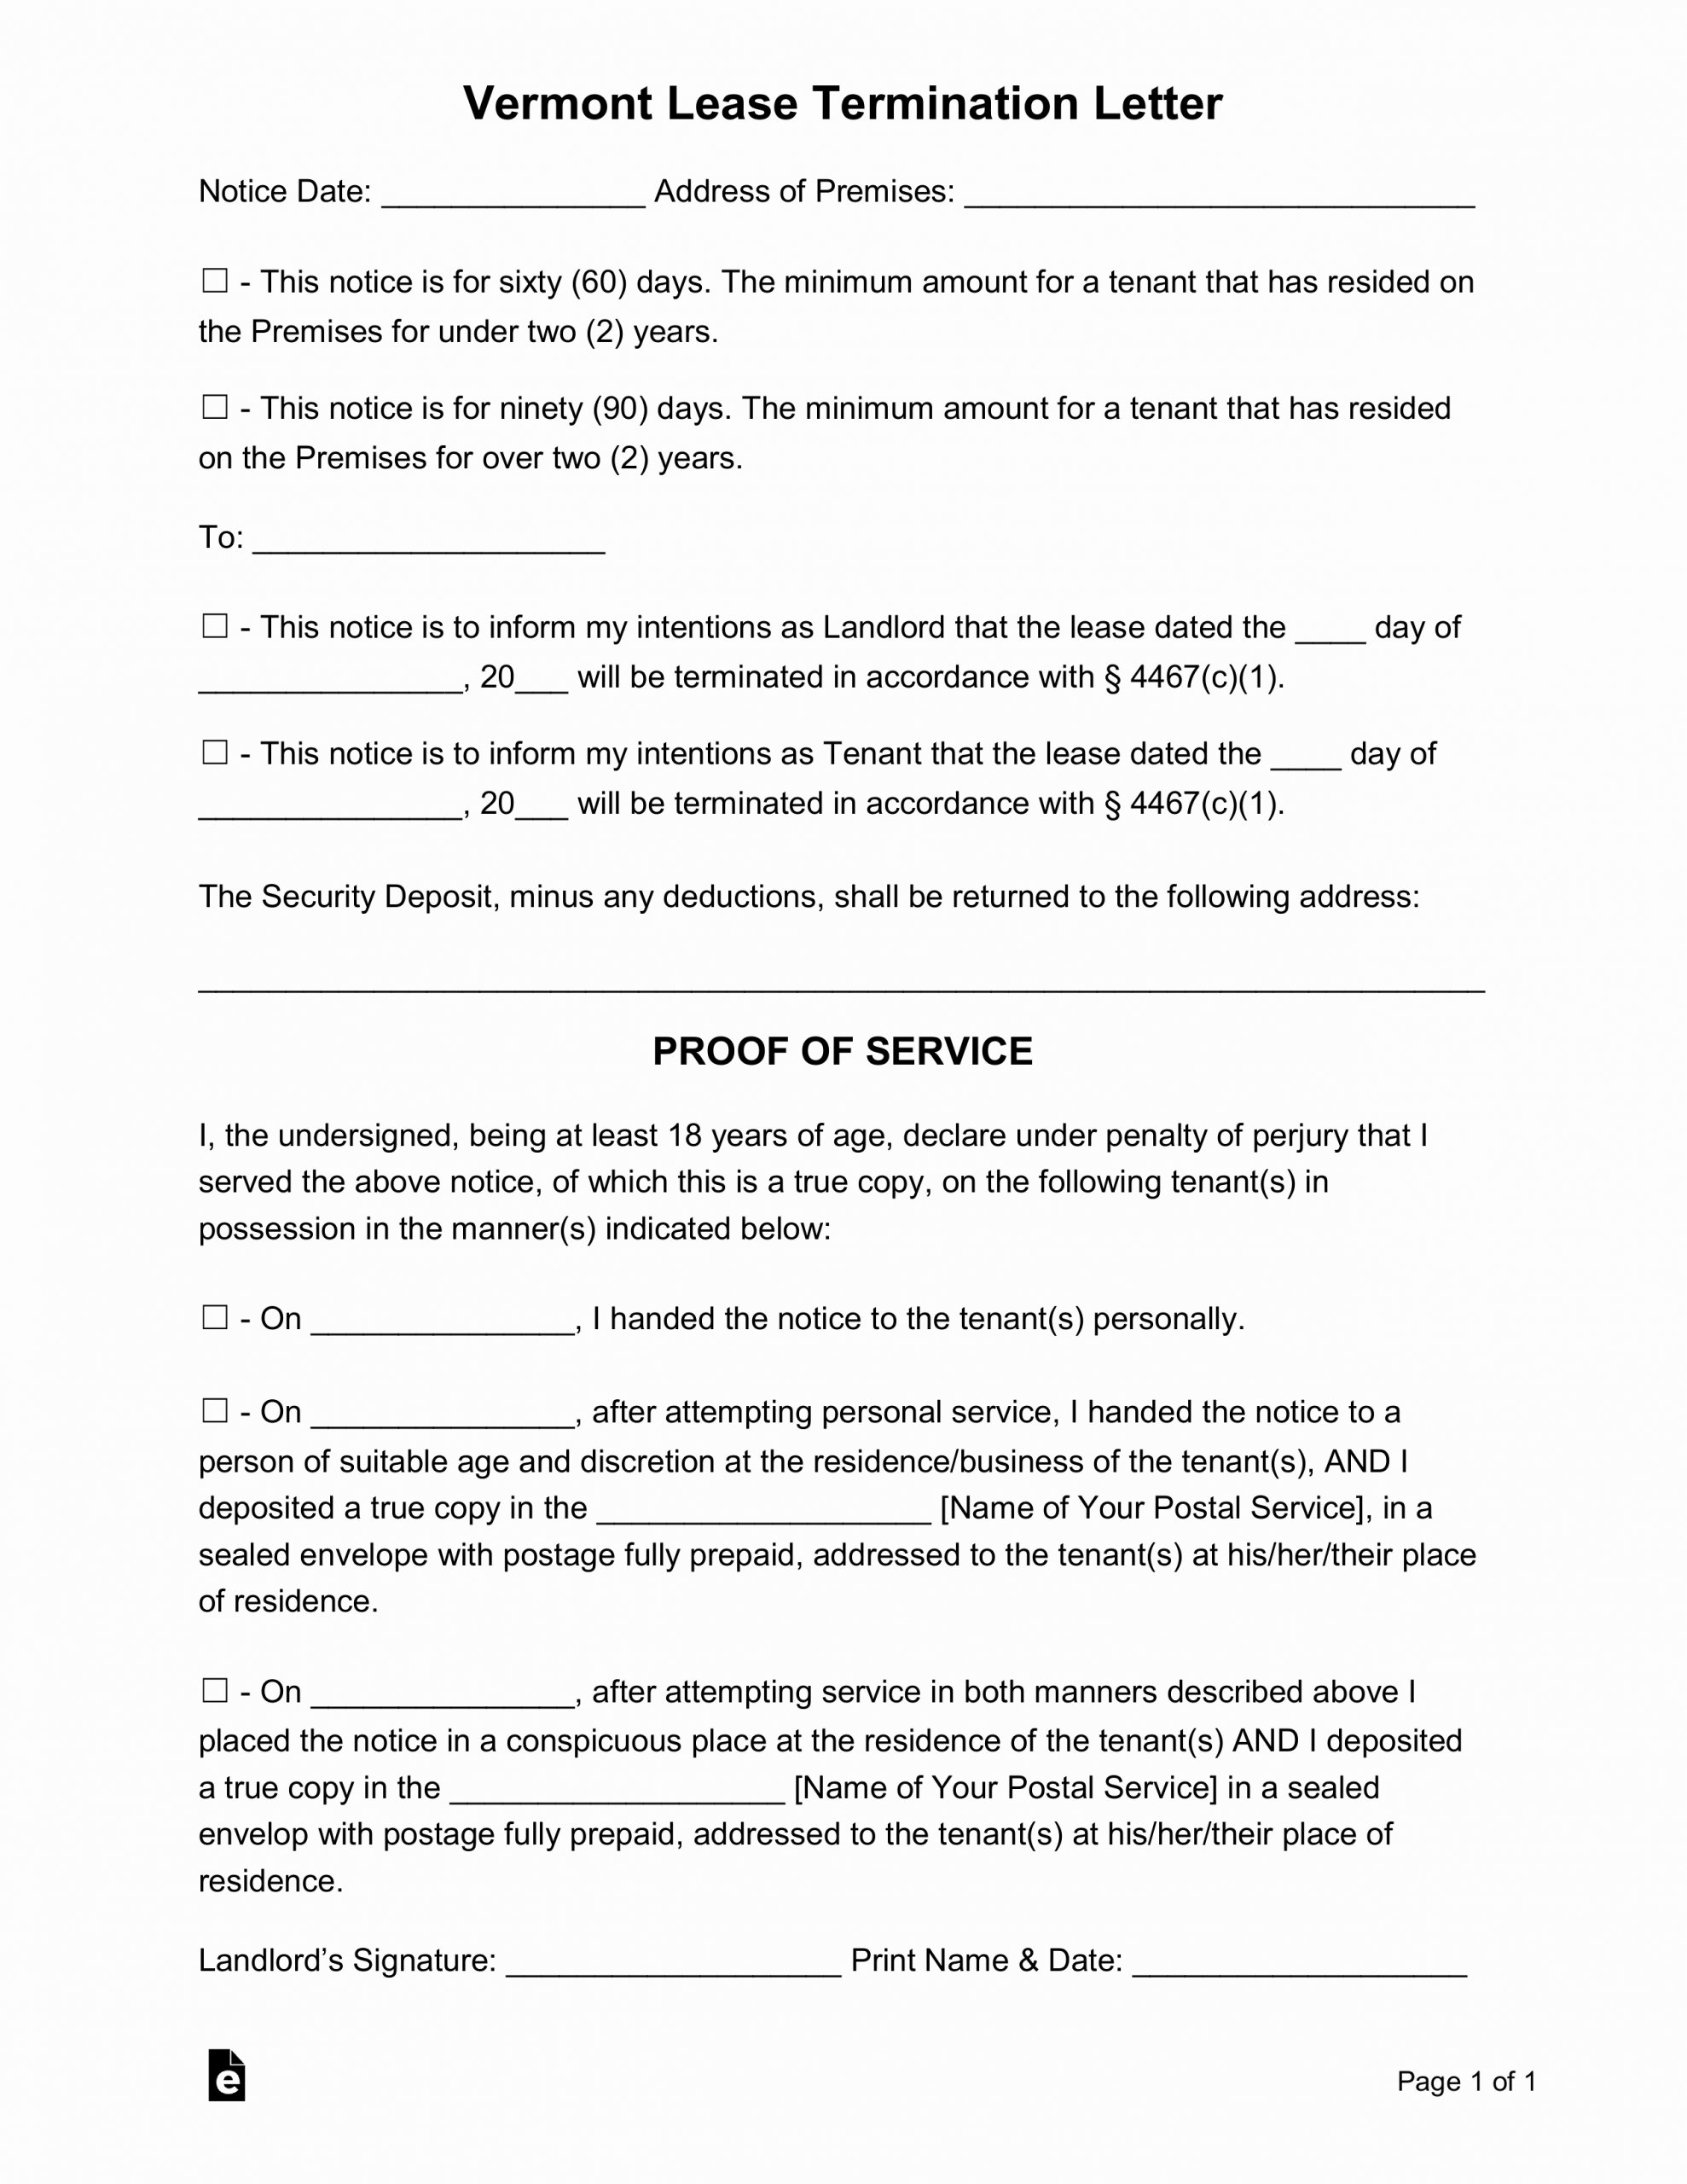 60 Day Eviction Notice Template Lovely Free Vermont Lease Termination Letter form